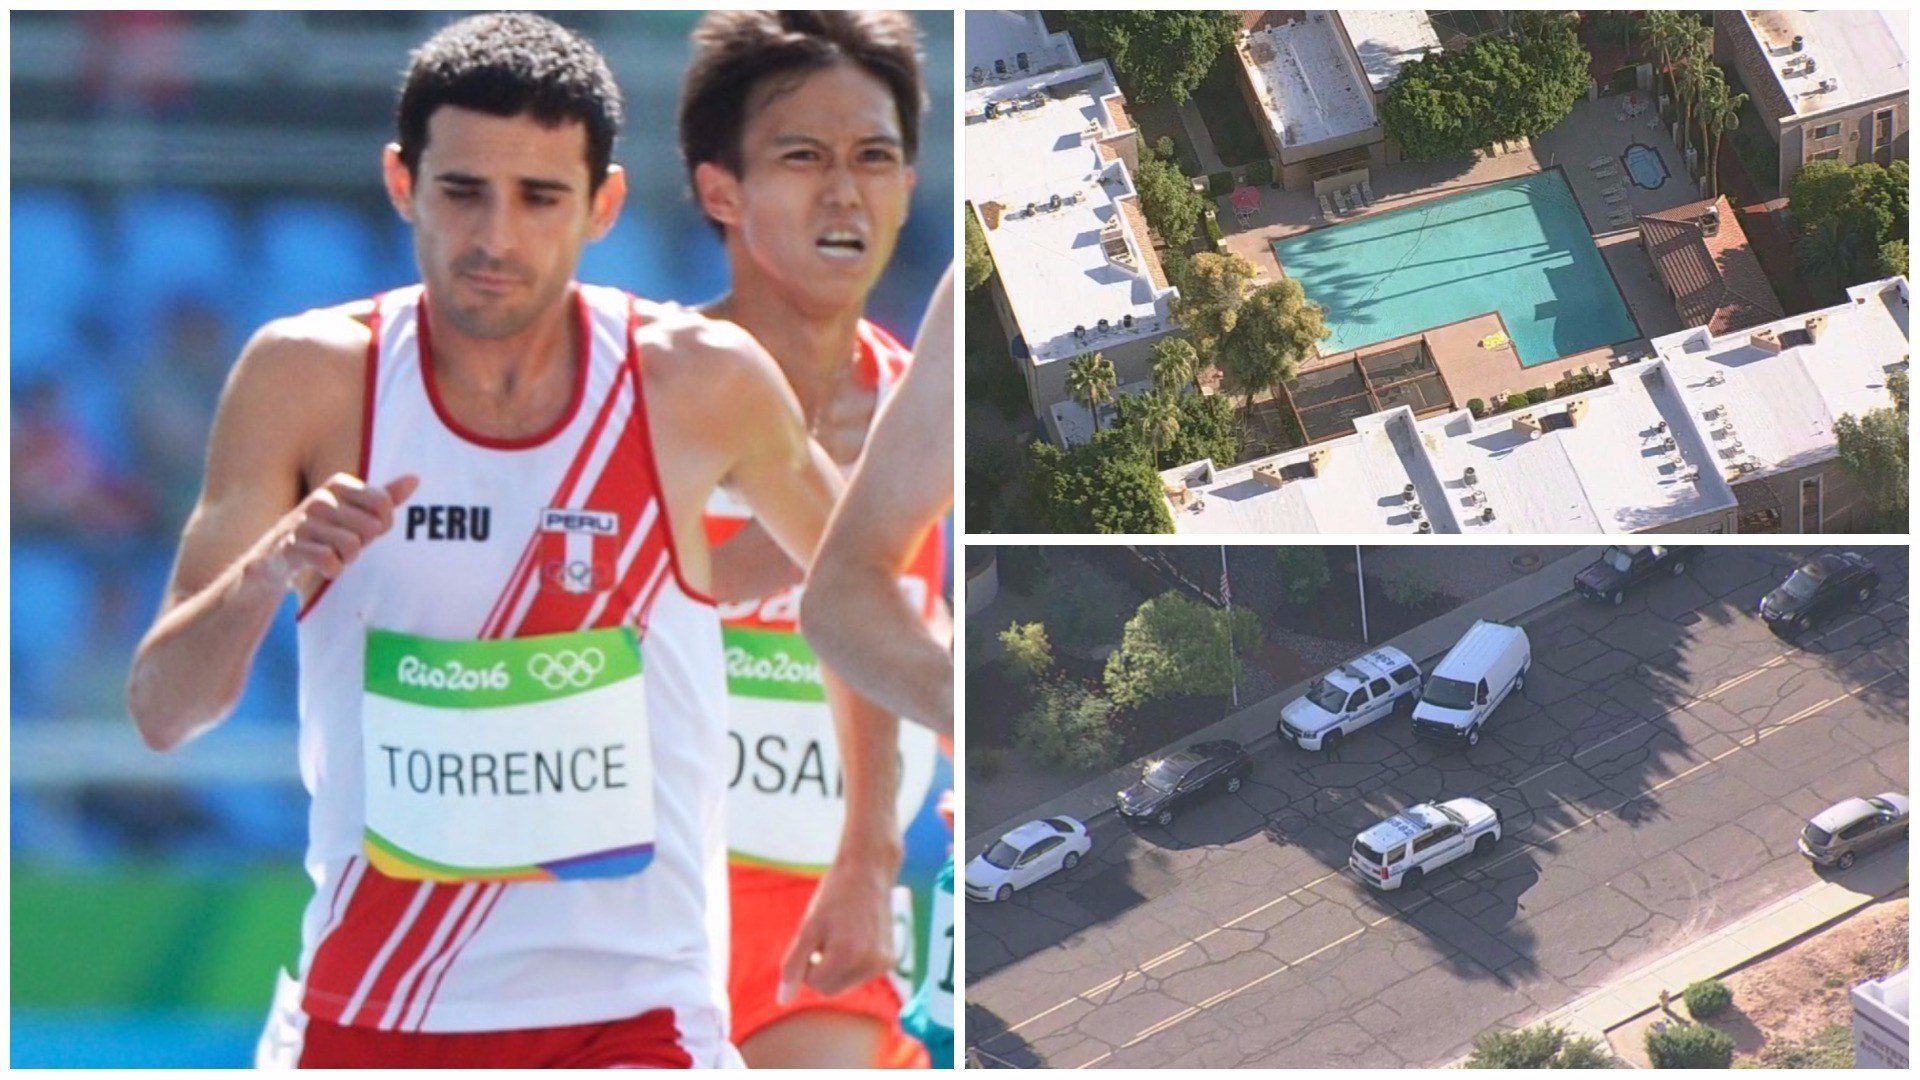 Olympic finalist David Torrence dies at 31